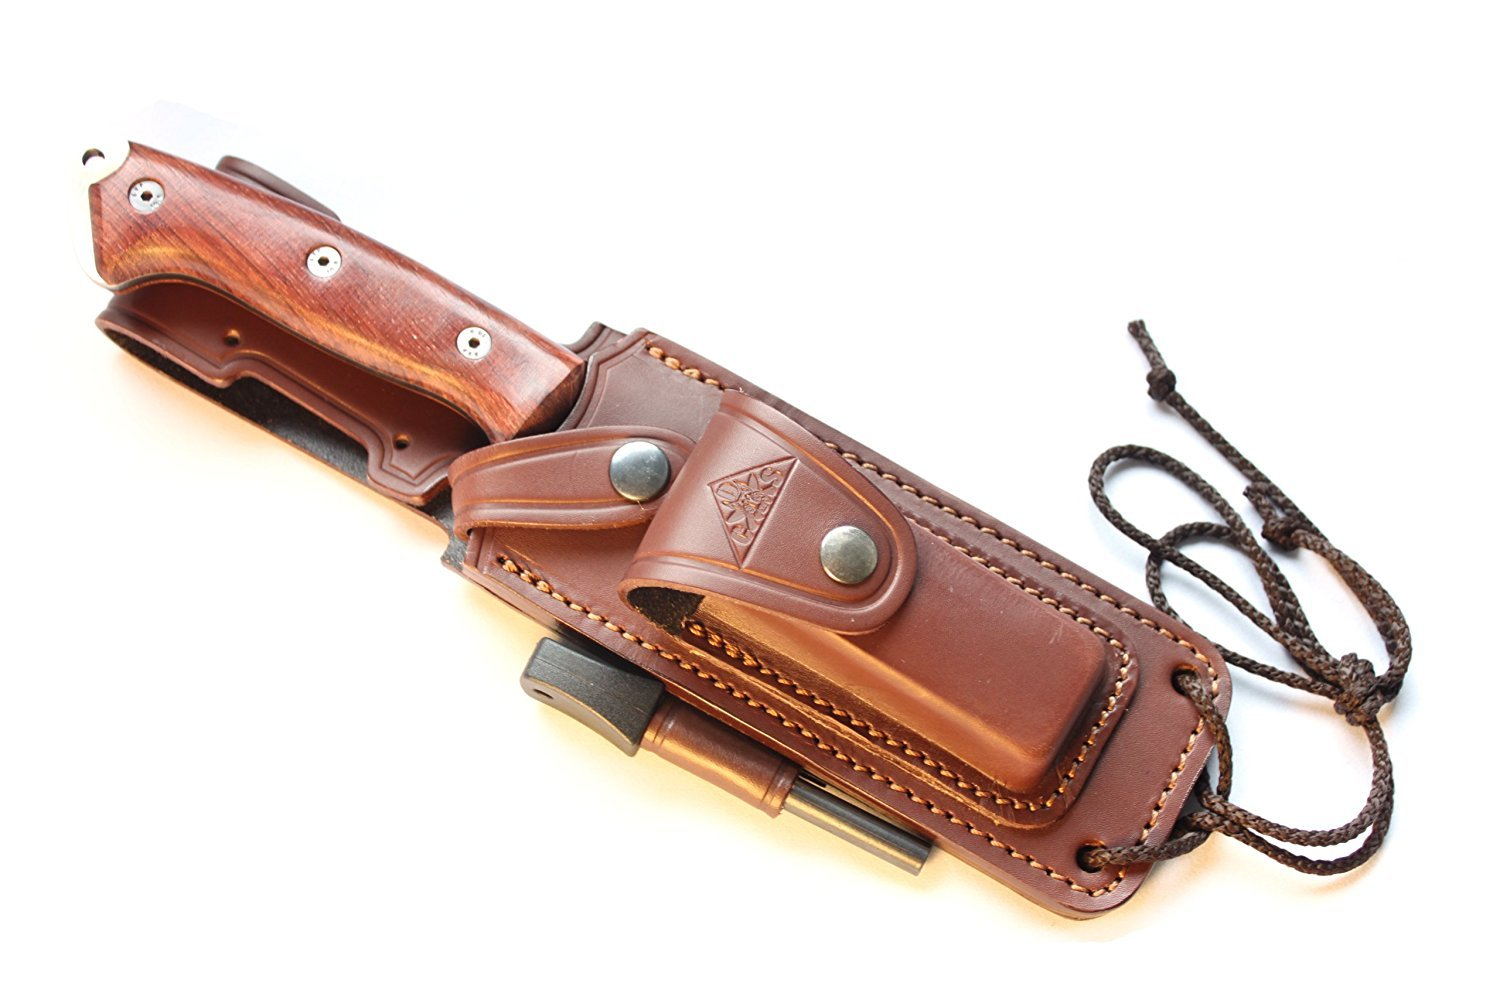 CELTIBEROCOCO - Outdoor / Survival / Hunting / Tactical Knife - Cocobolo Wood Handle, Stainless Steel MOVA-58 with Genuine Leather Multi-positioned Sheath + Sharpener Stone + Firesteel by CDS-Survival